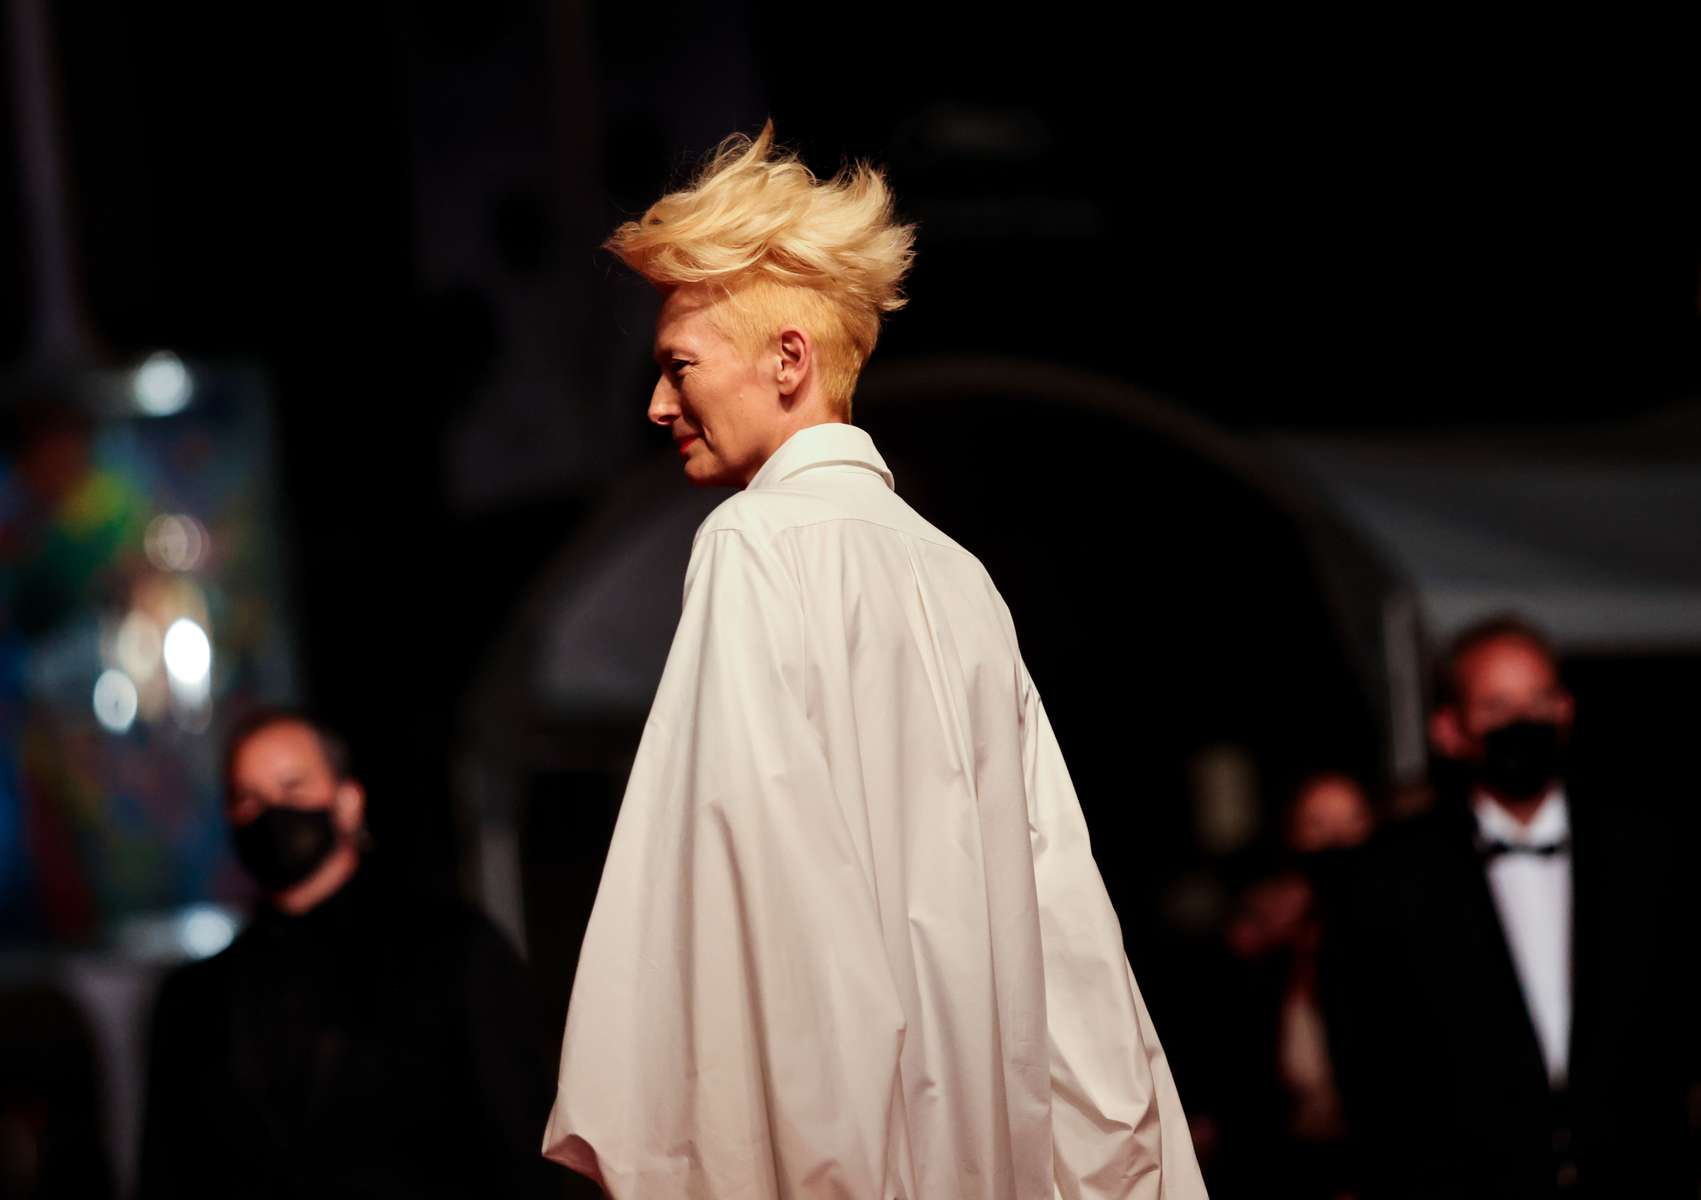 """British actress Tilda Swinton arrives for the screening of the film  """"Les Olympiades"""" (Paris 13th District) in competition at the 74th annual Cannes Film Festival in Cannes, France on July 14, 2021. For the first time in its history, the Festival falls on Bastille day, because of delays due to the Covid-19."""